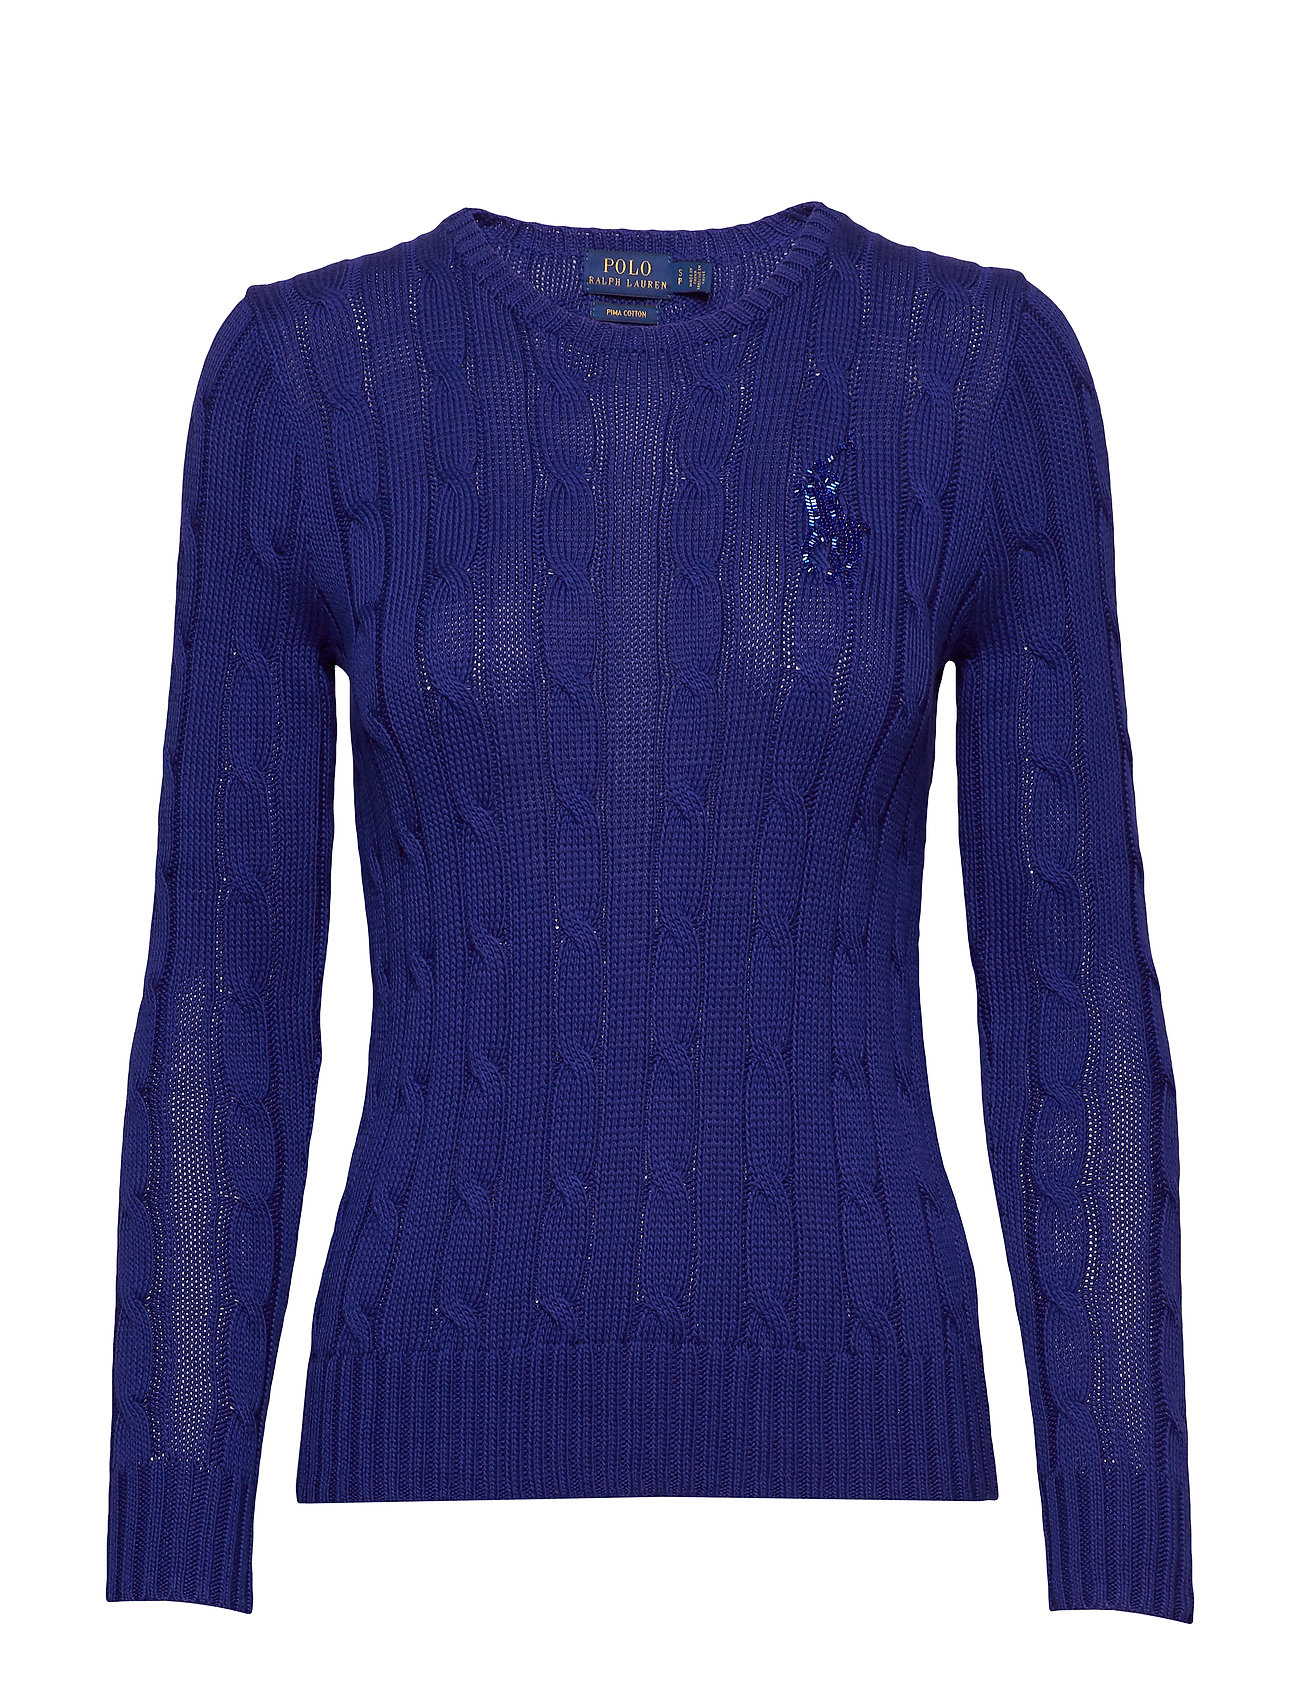 Polo Ralph Lauren Cable-Knit Cotton Sweater - FALL ROYAL